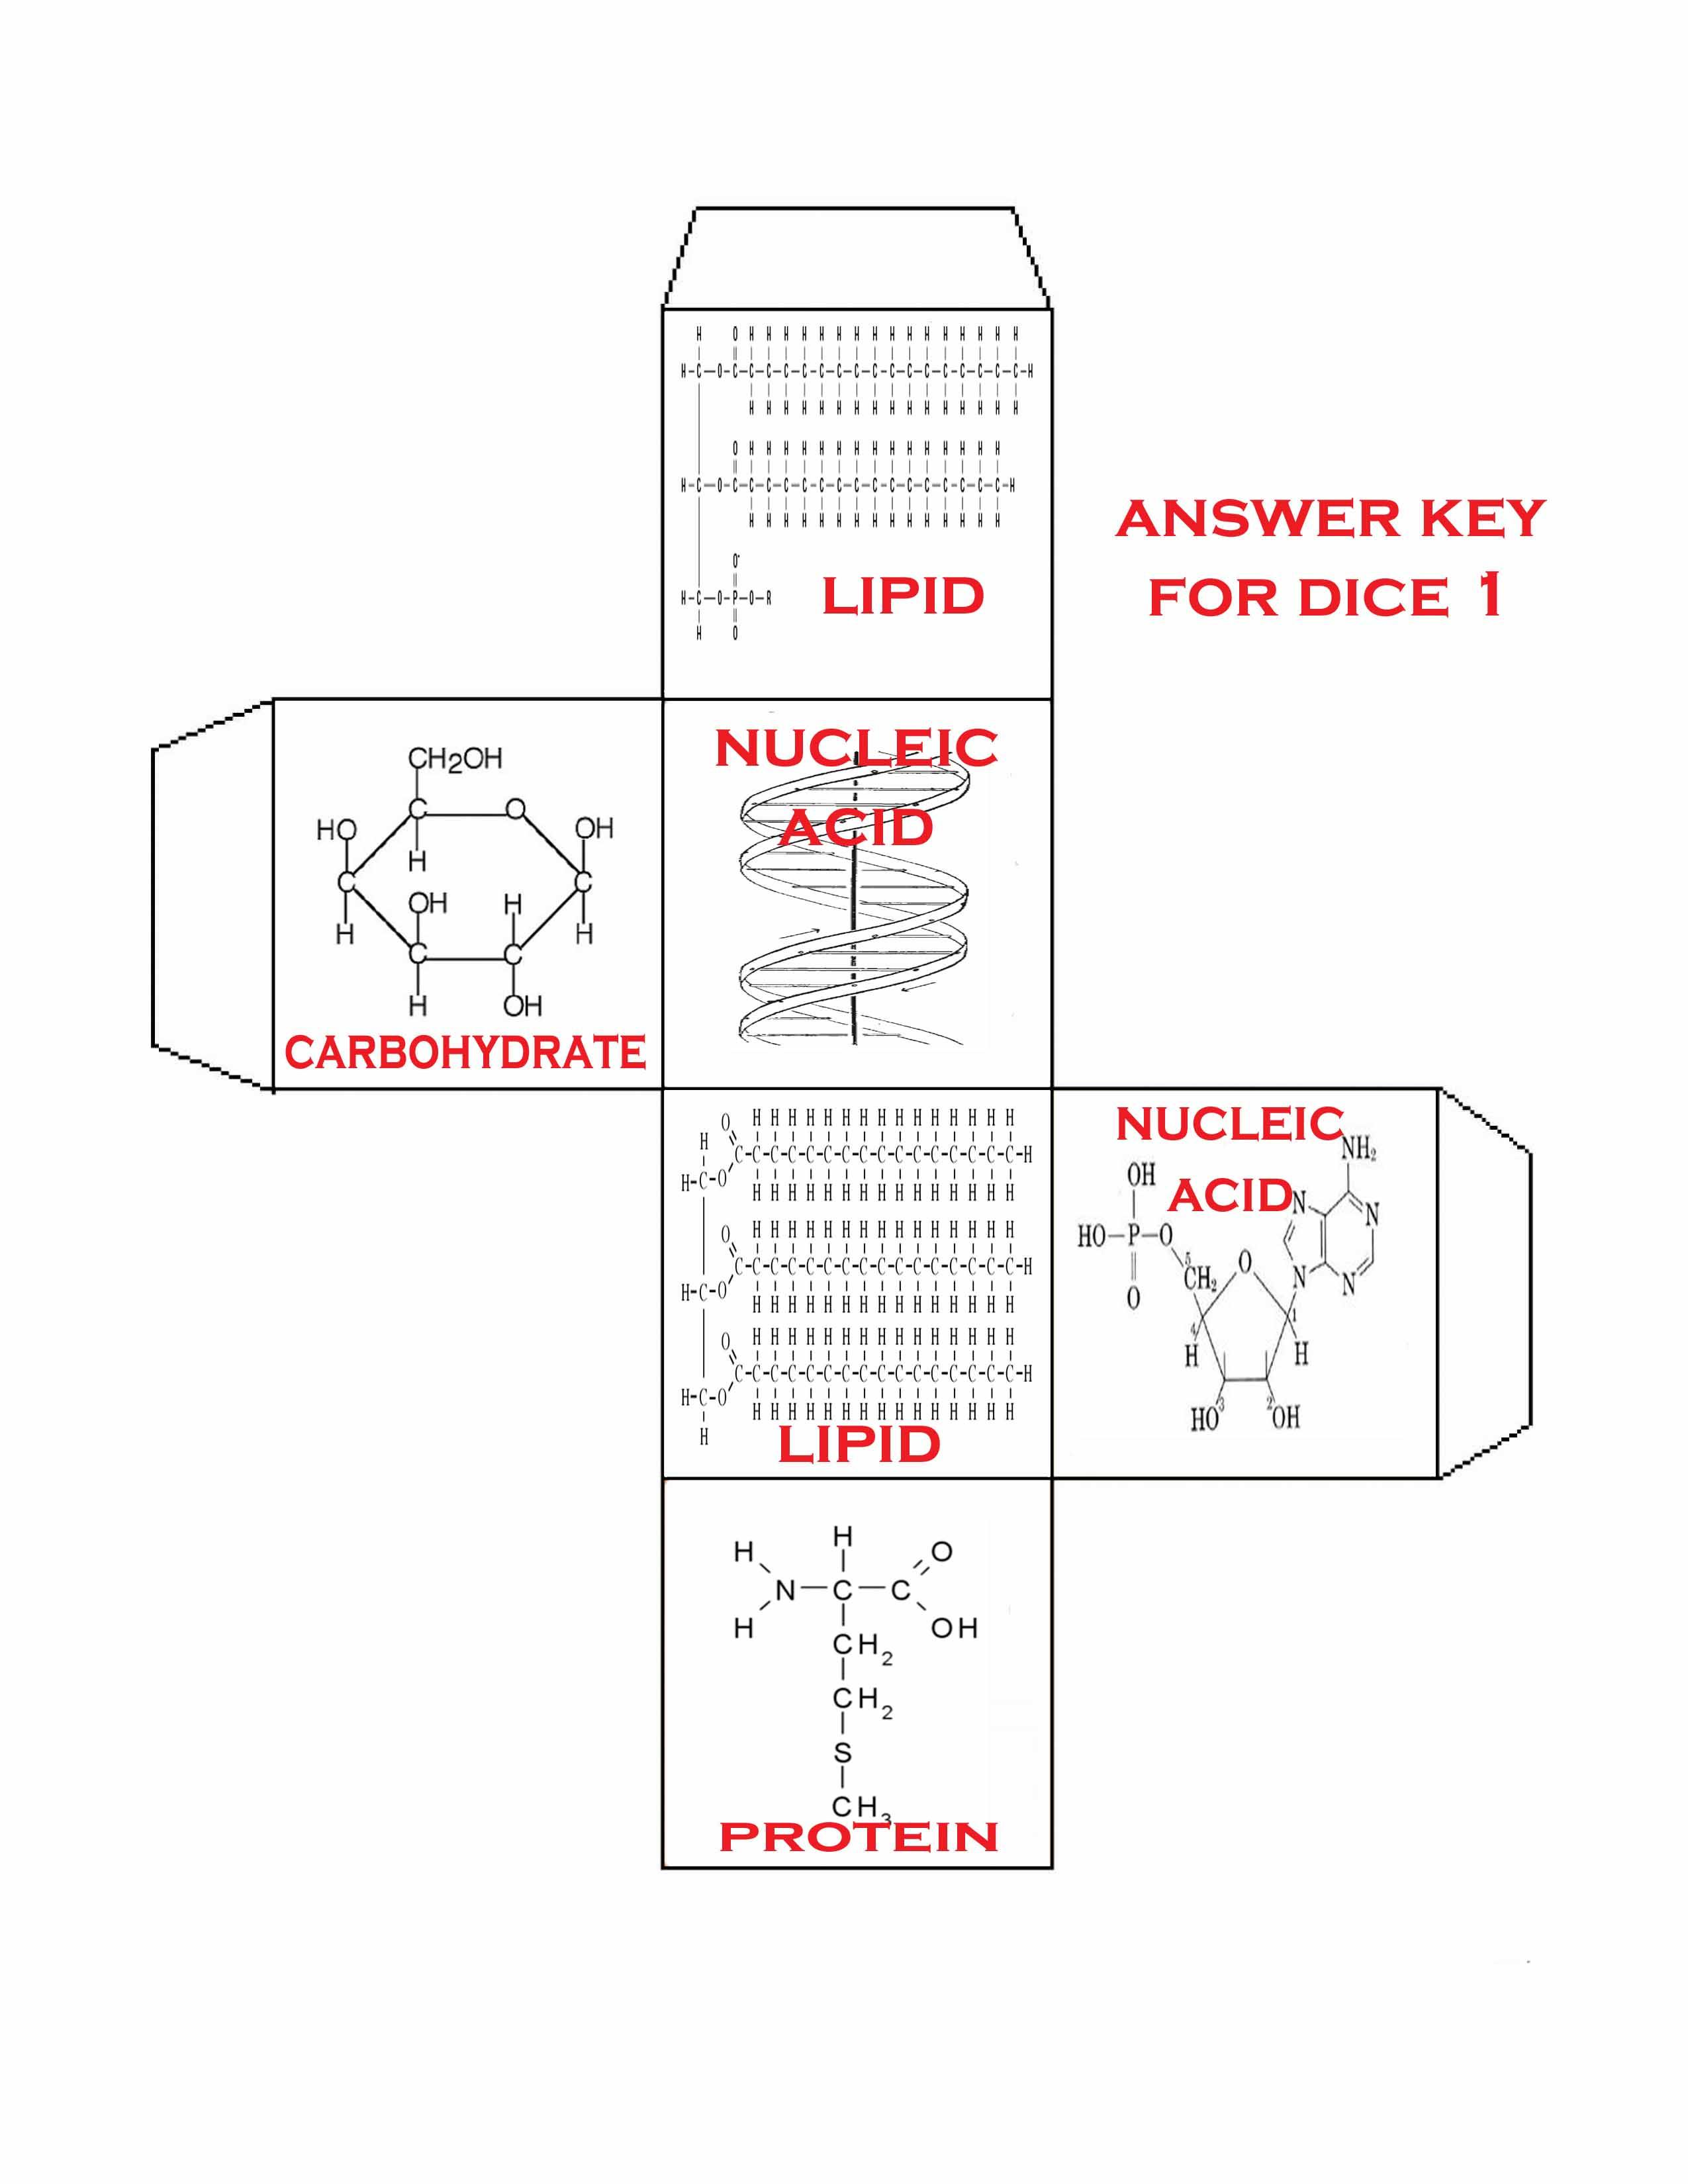 Biomolecules 3d Carbohydrates Proteins Nucleic Acids And Lipids